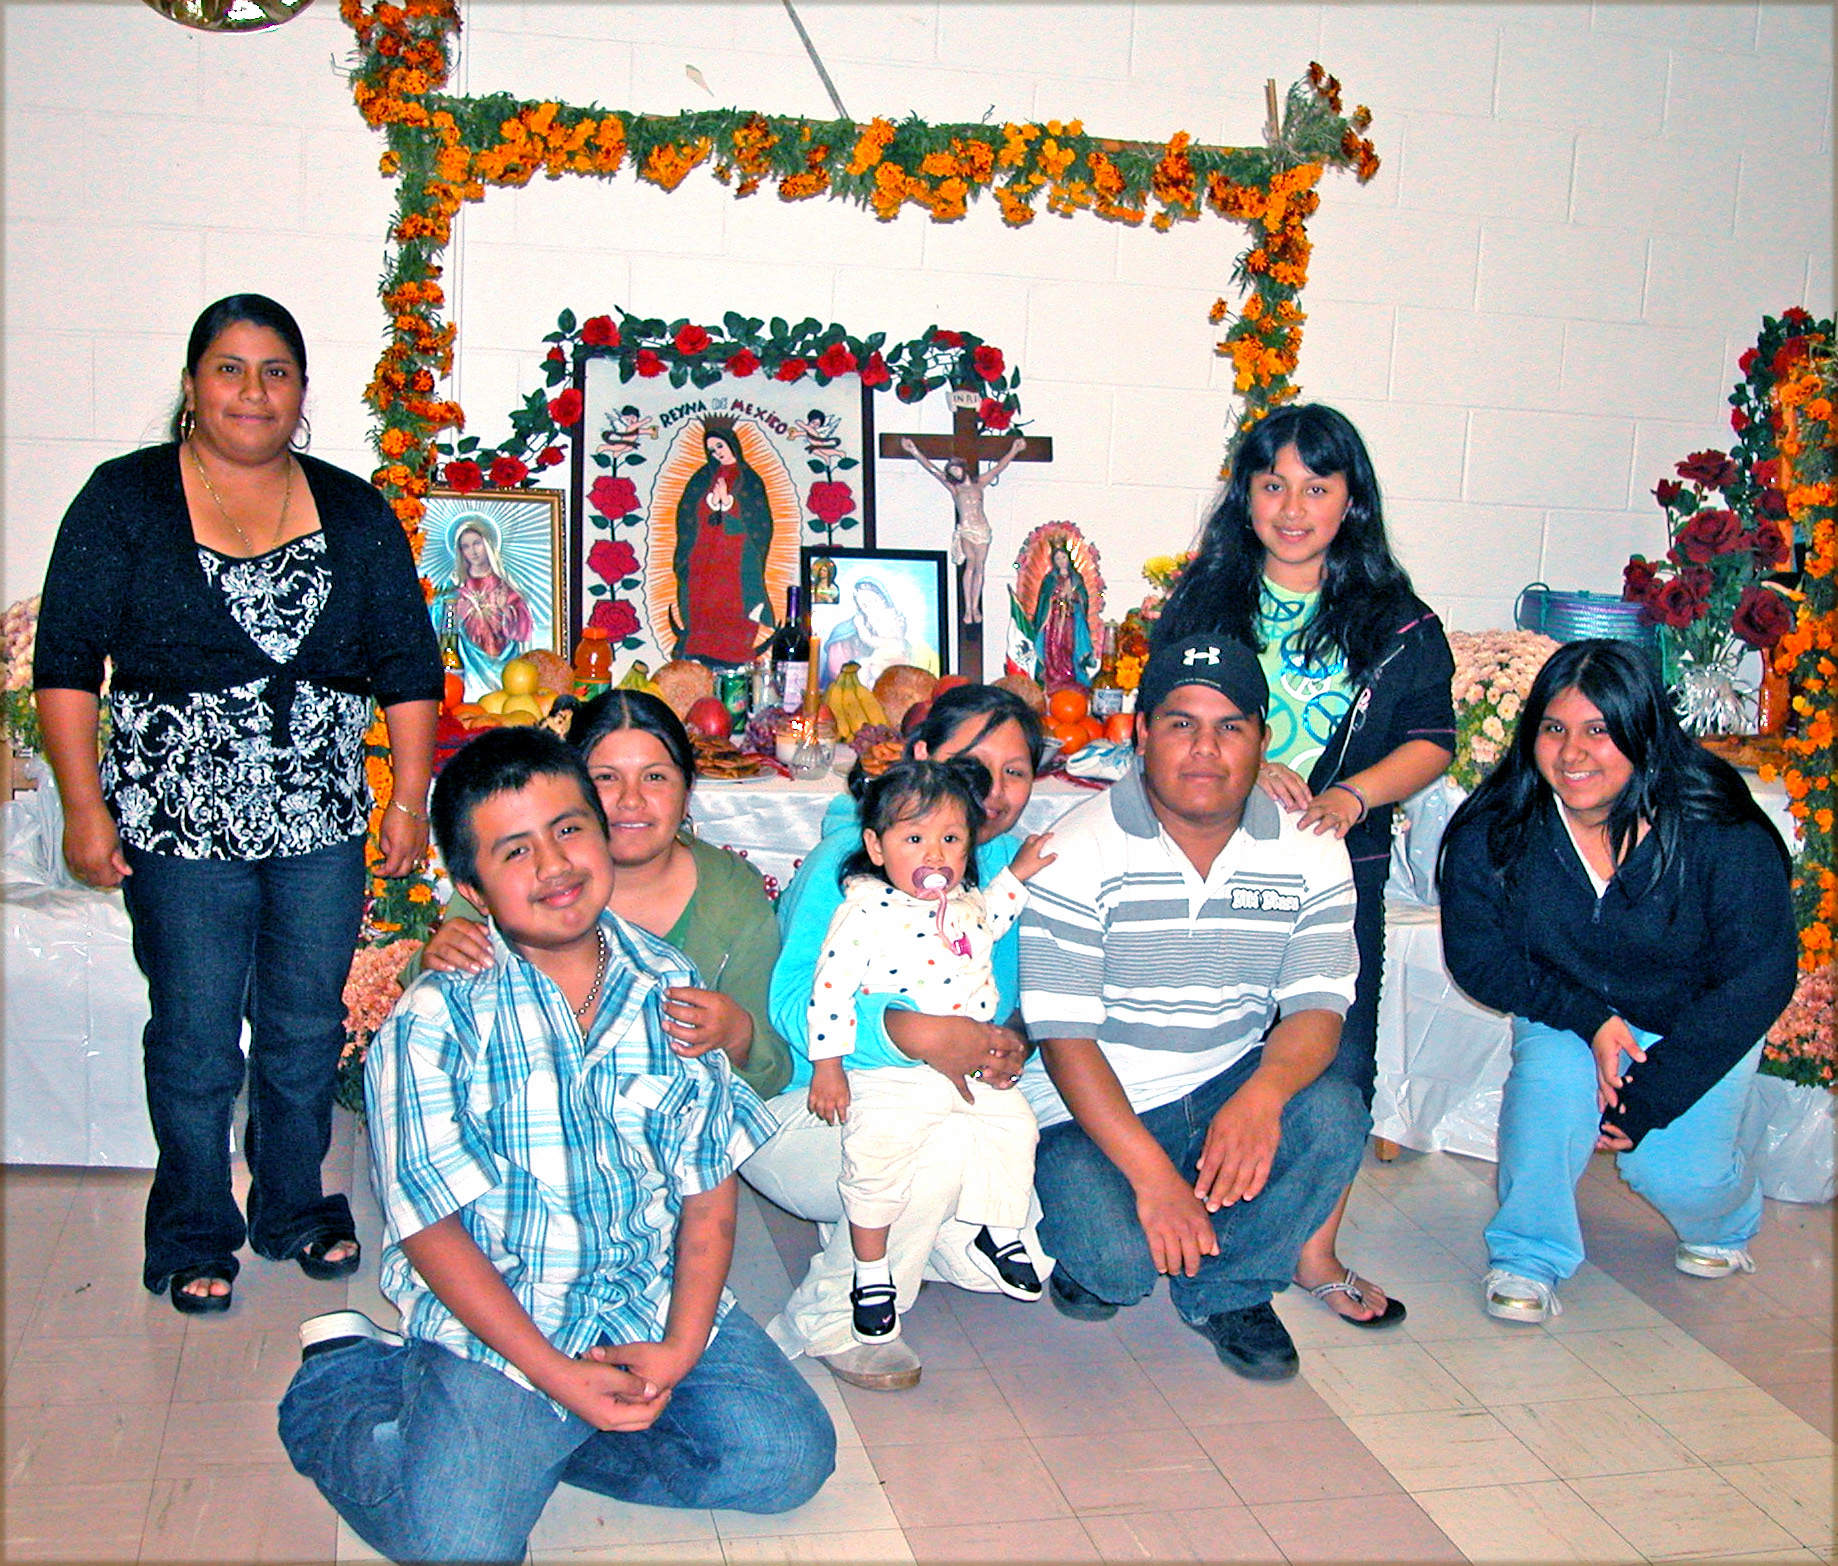 Religion Plays An Important Role In Binding The Entire Family Together